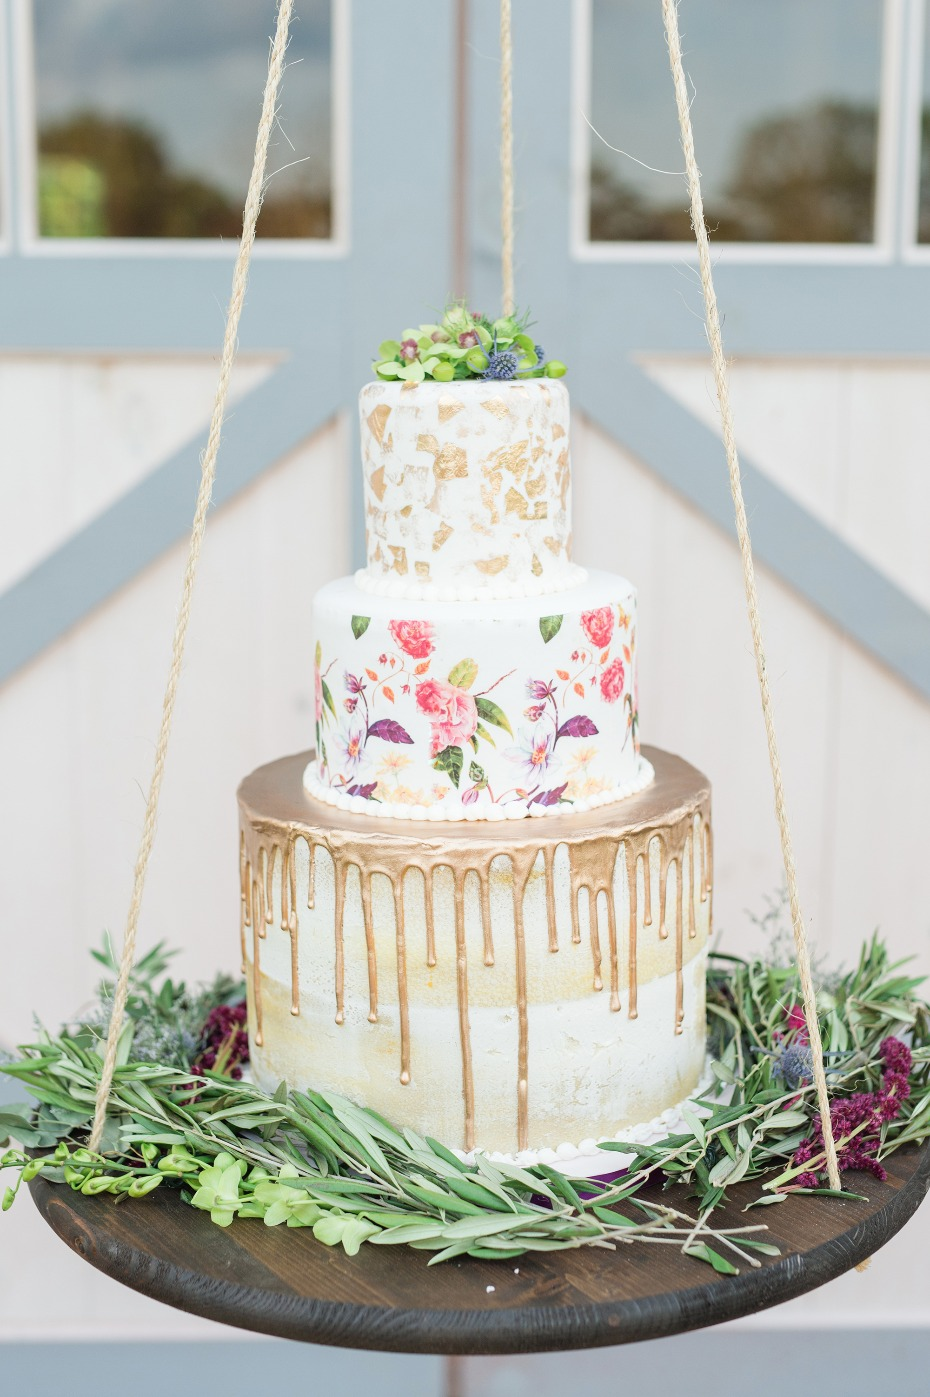 Gorgeous cake on a hanging cake stand